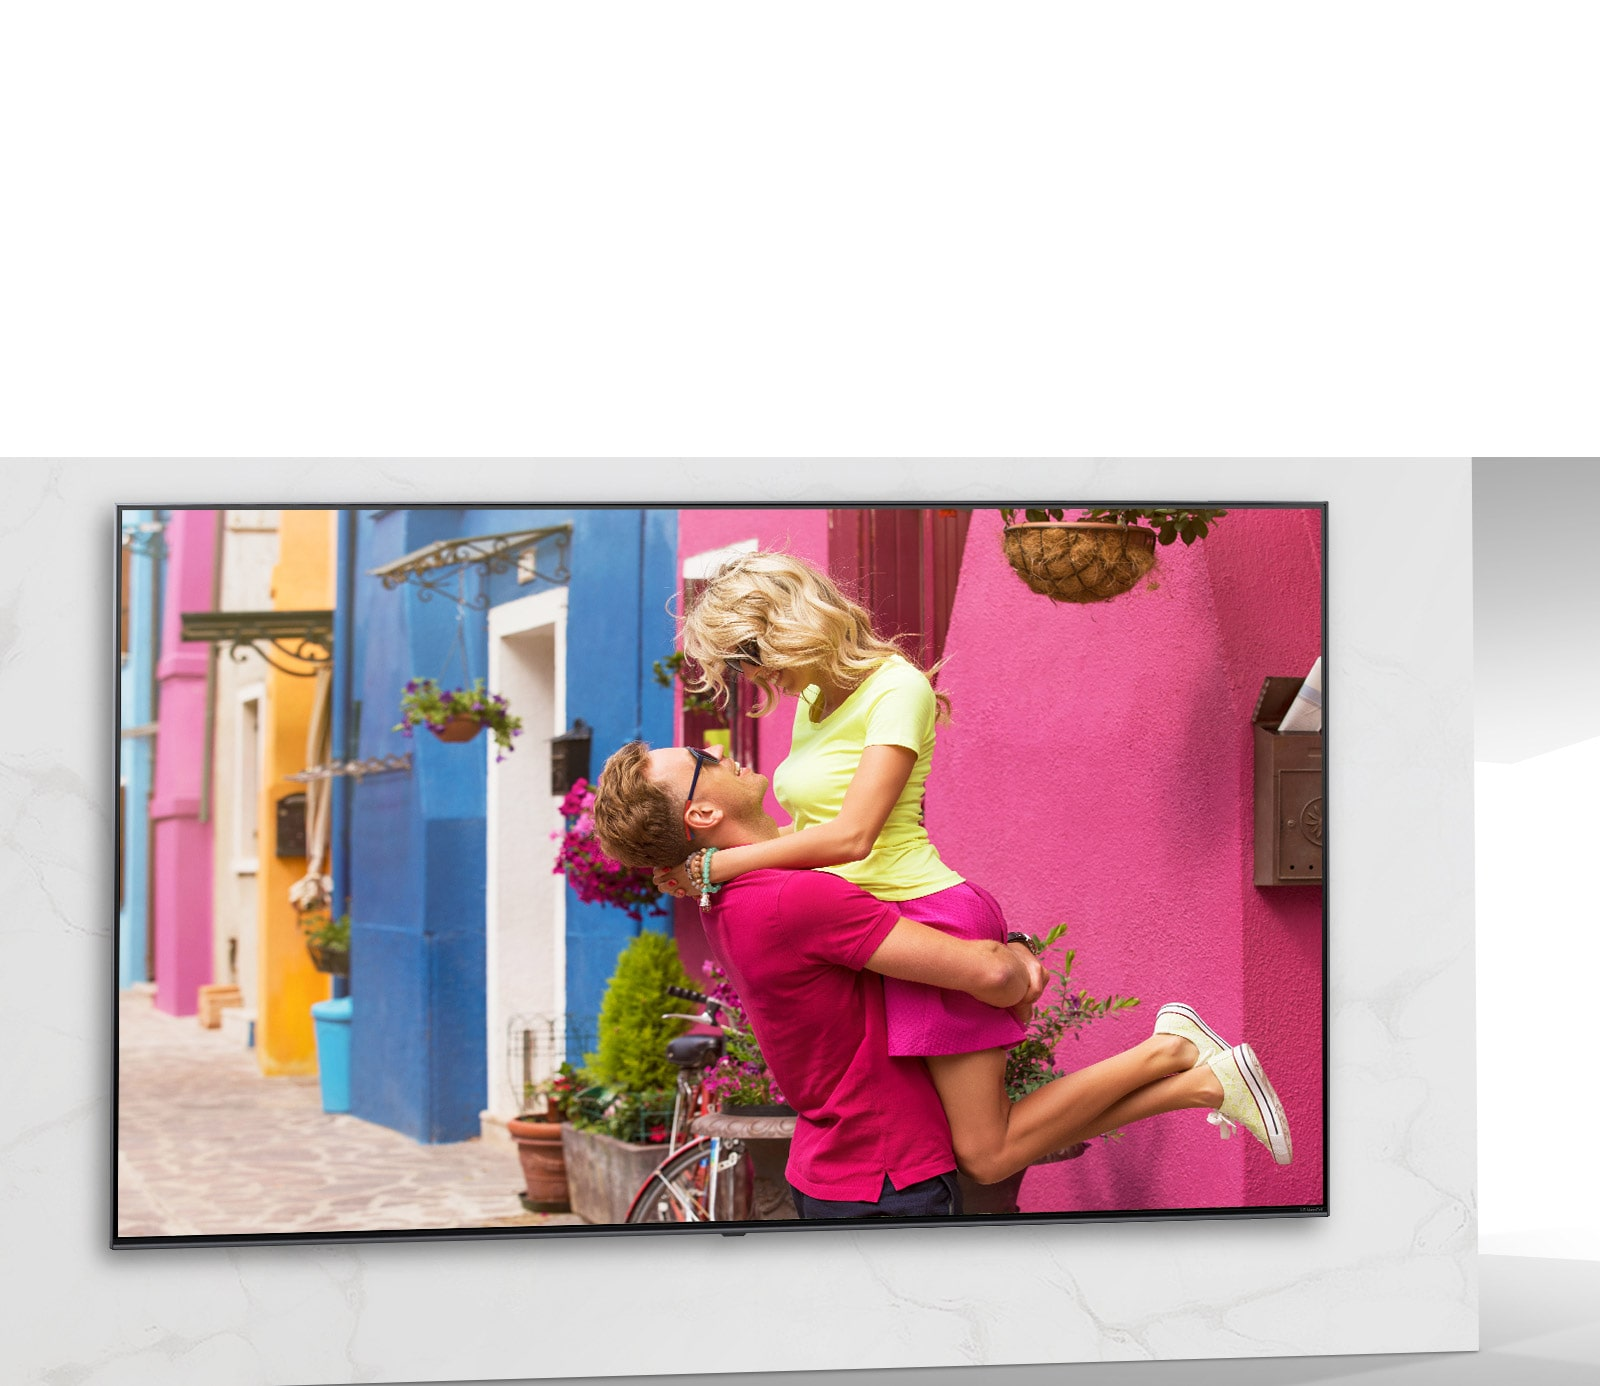 TV screen showing the scene of colorful romance movie with men and women hugging.